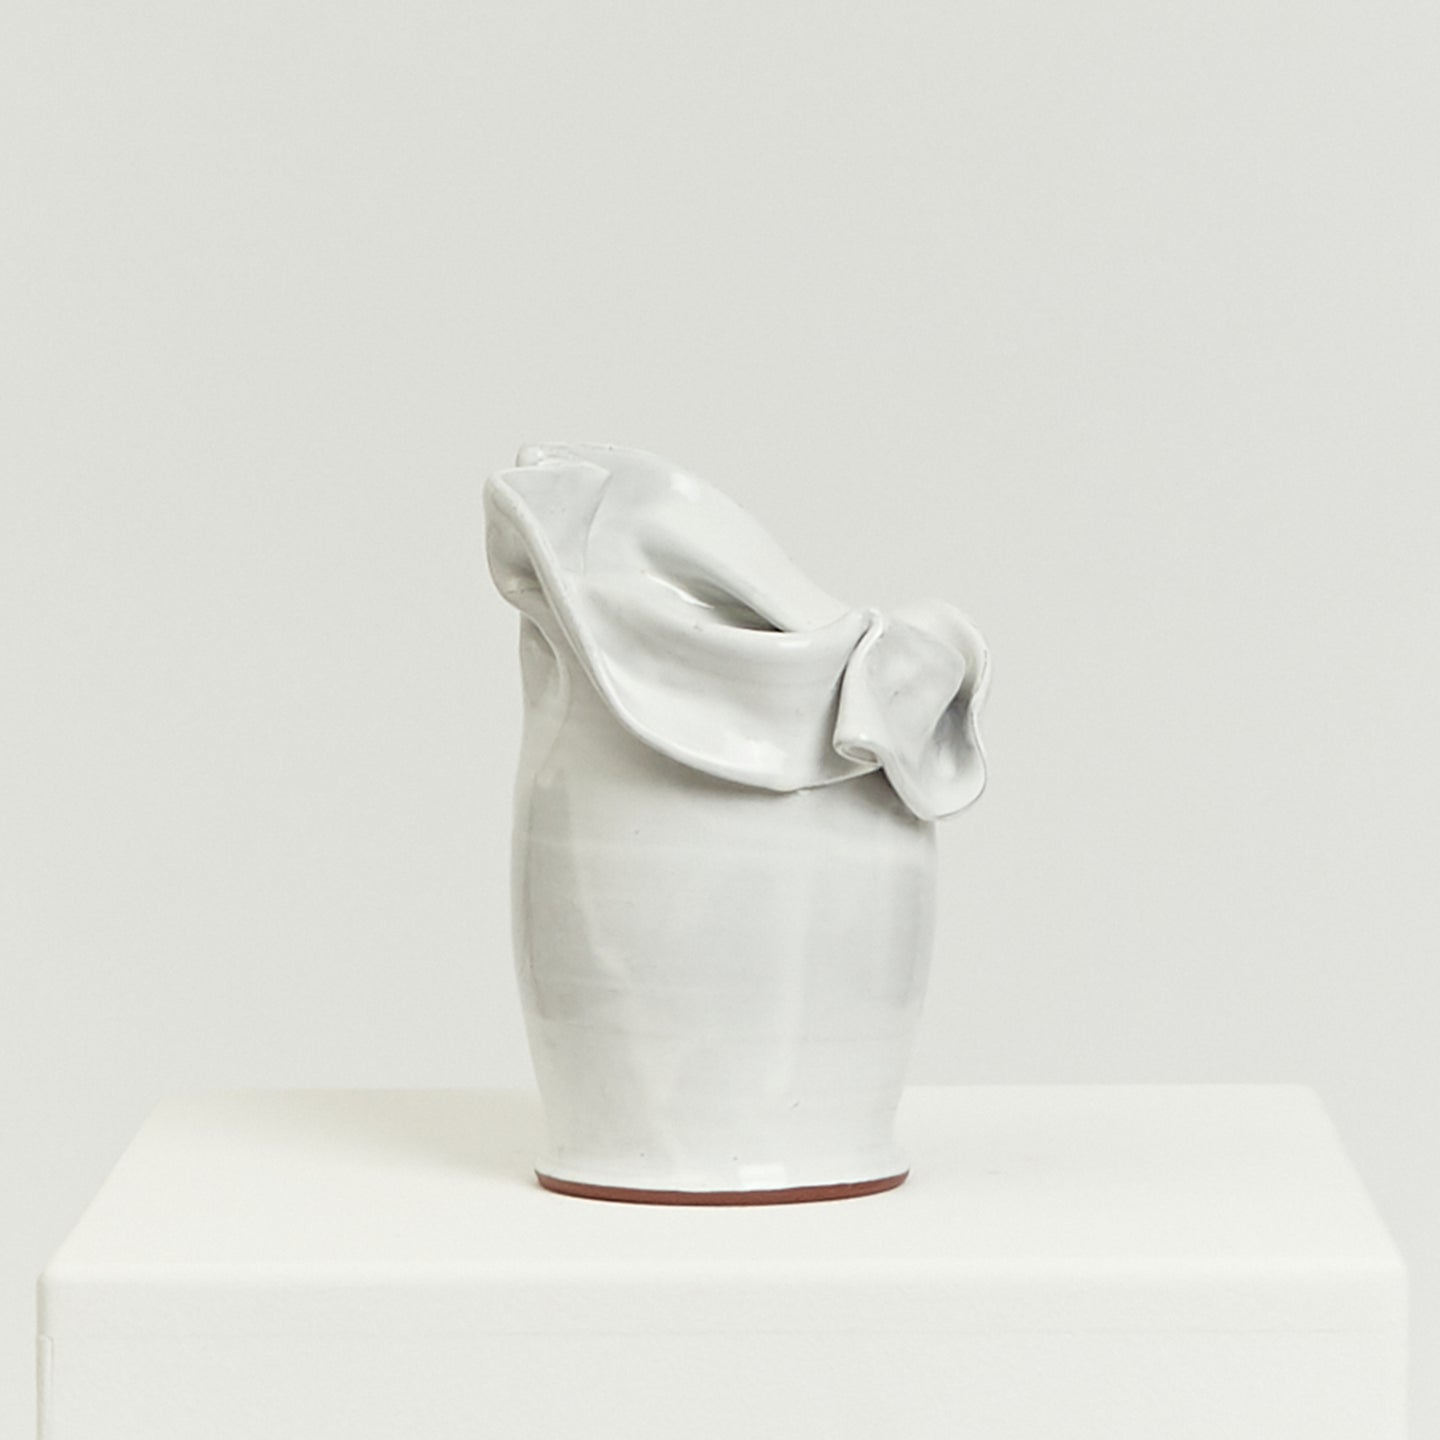 White slouchy studio ceramic vessel